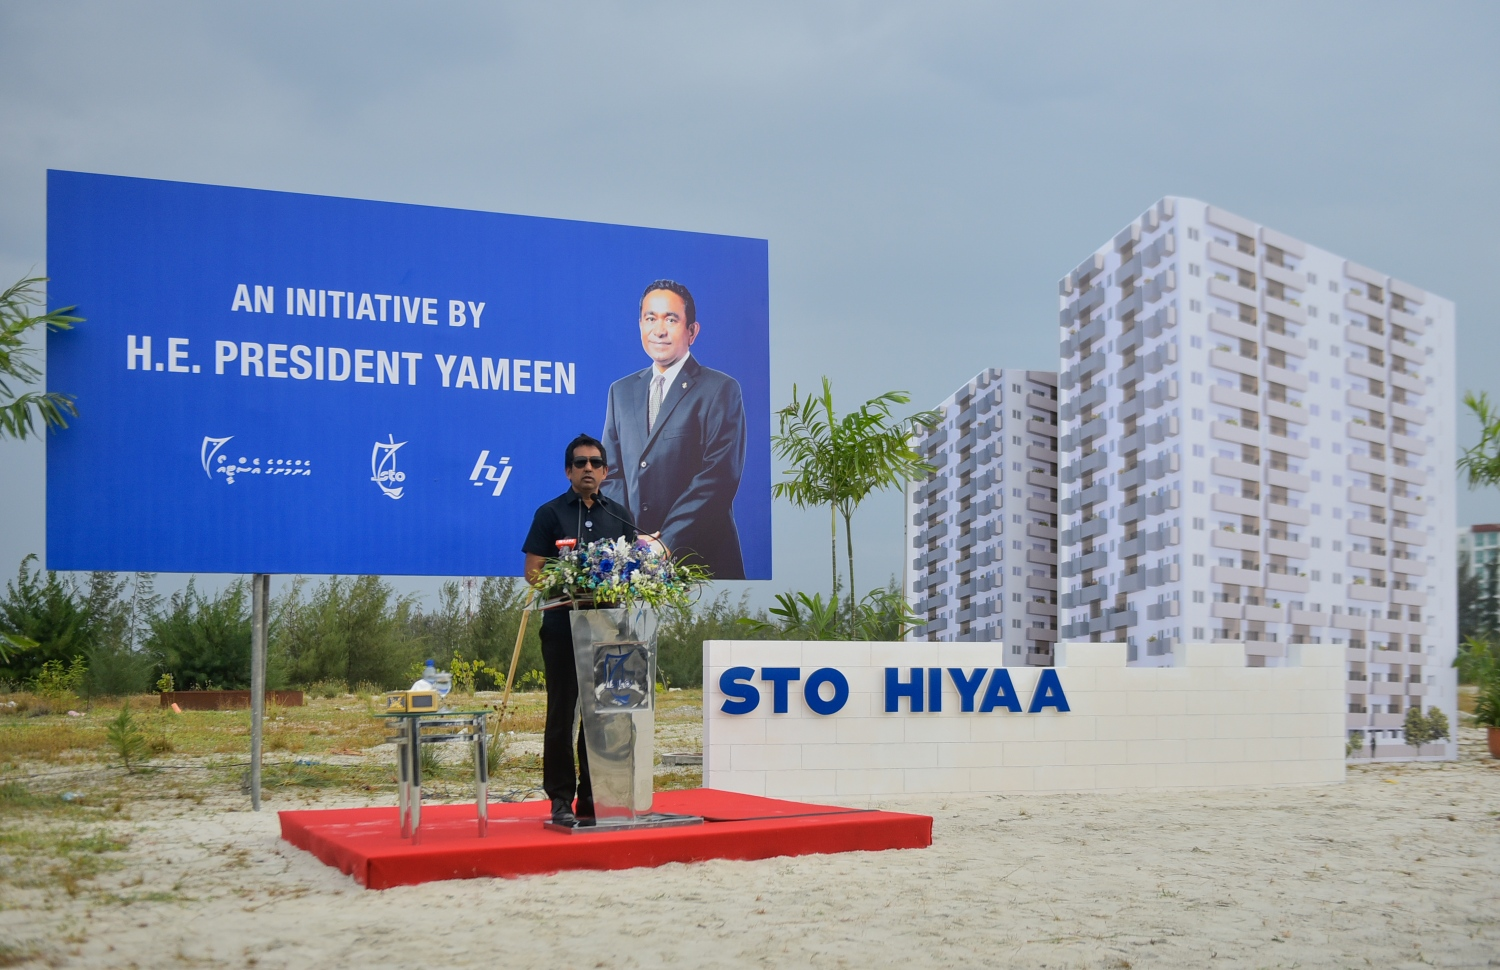 Major alterations to 'Hiyaa' housing scheme in Hulhumale - The Edition